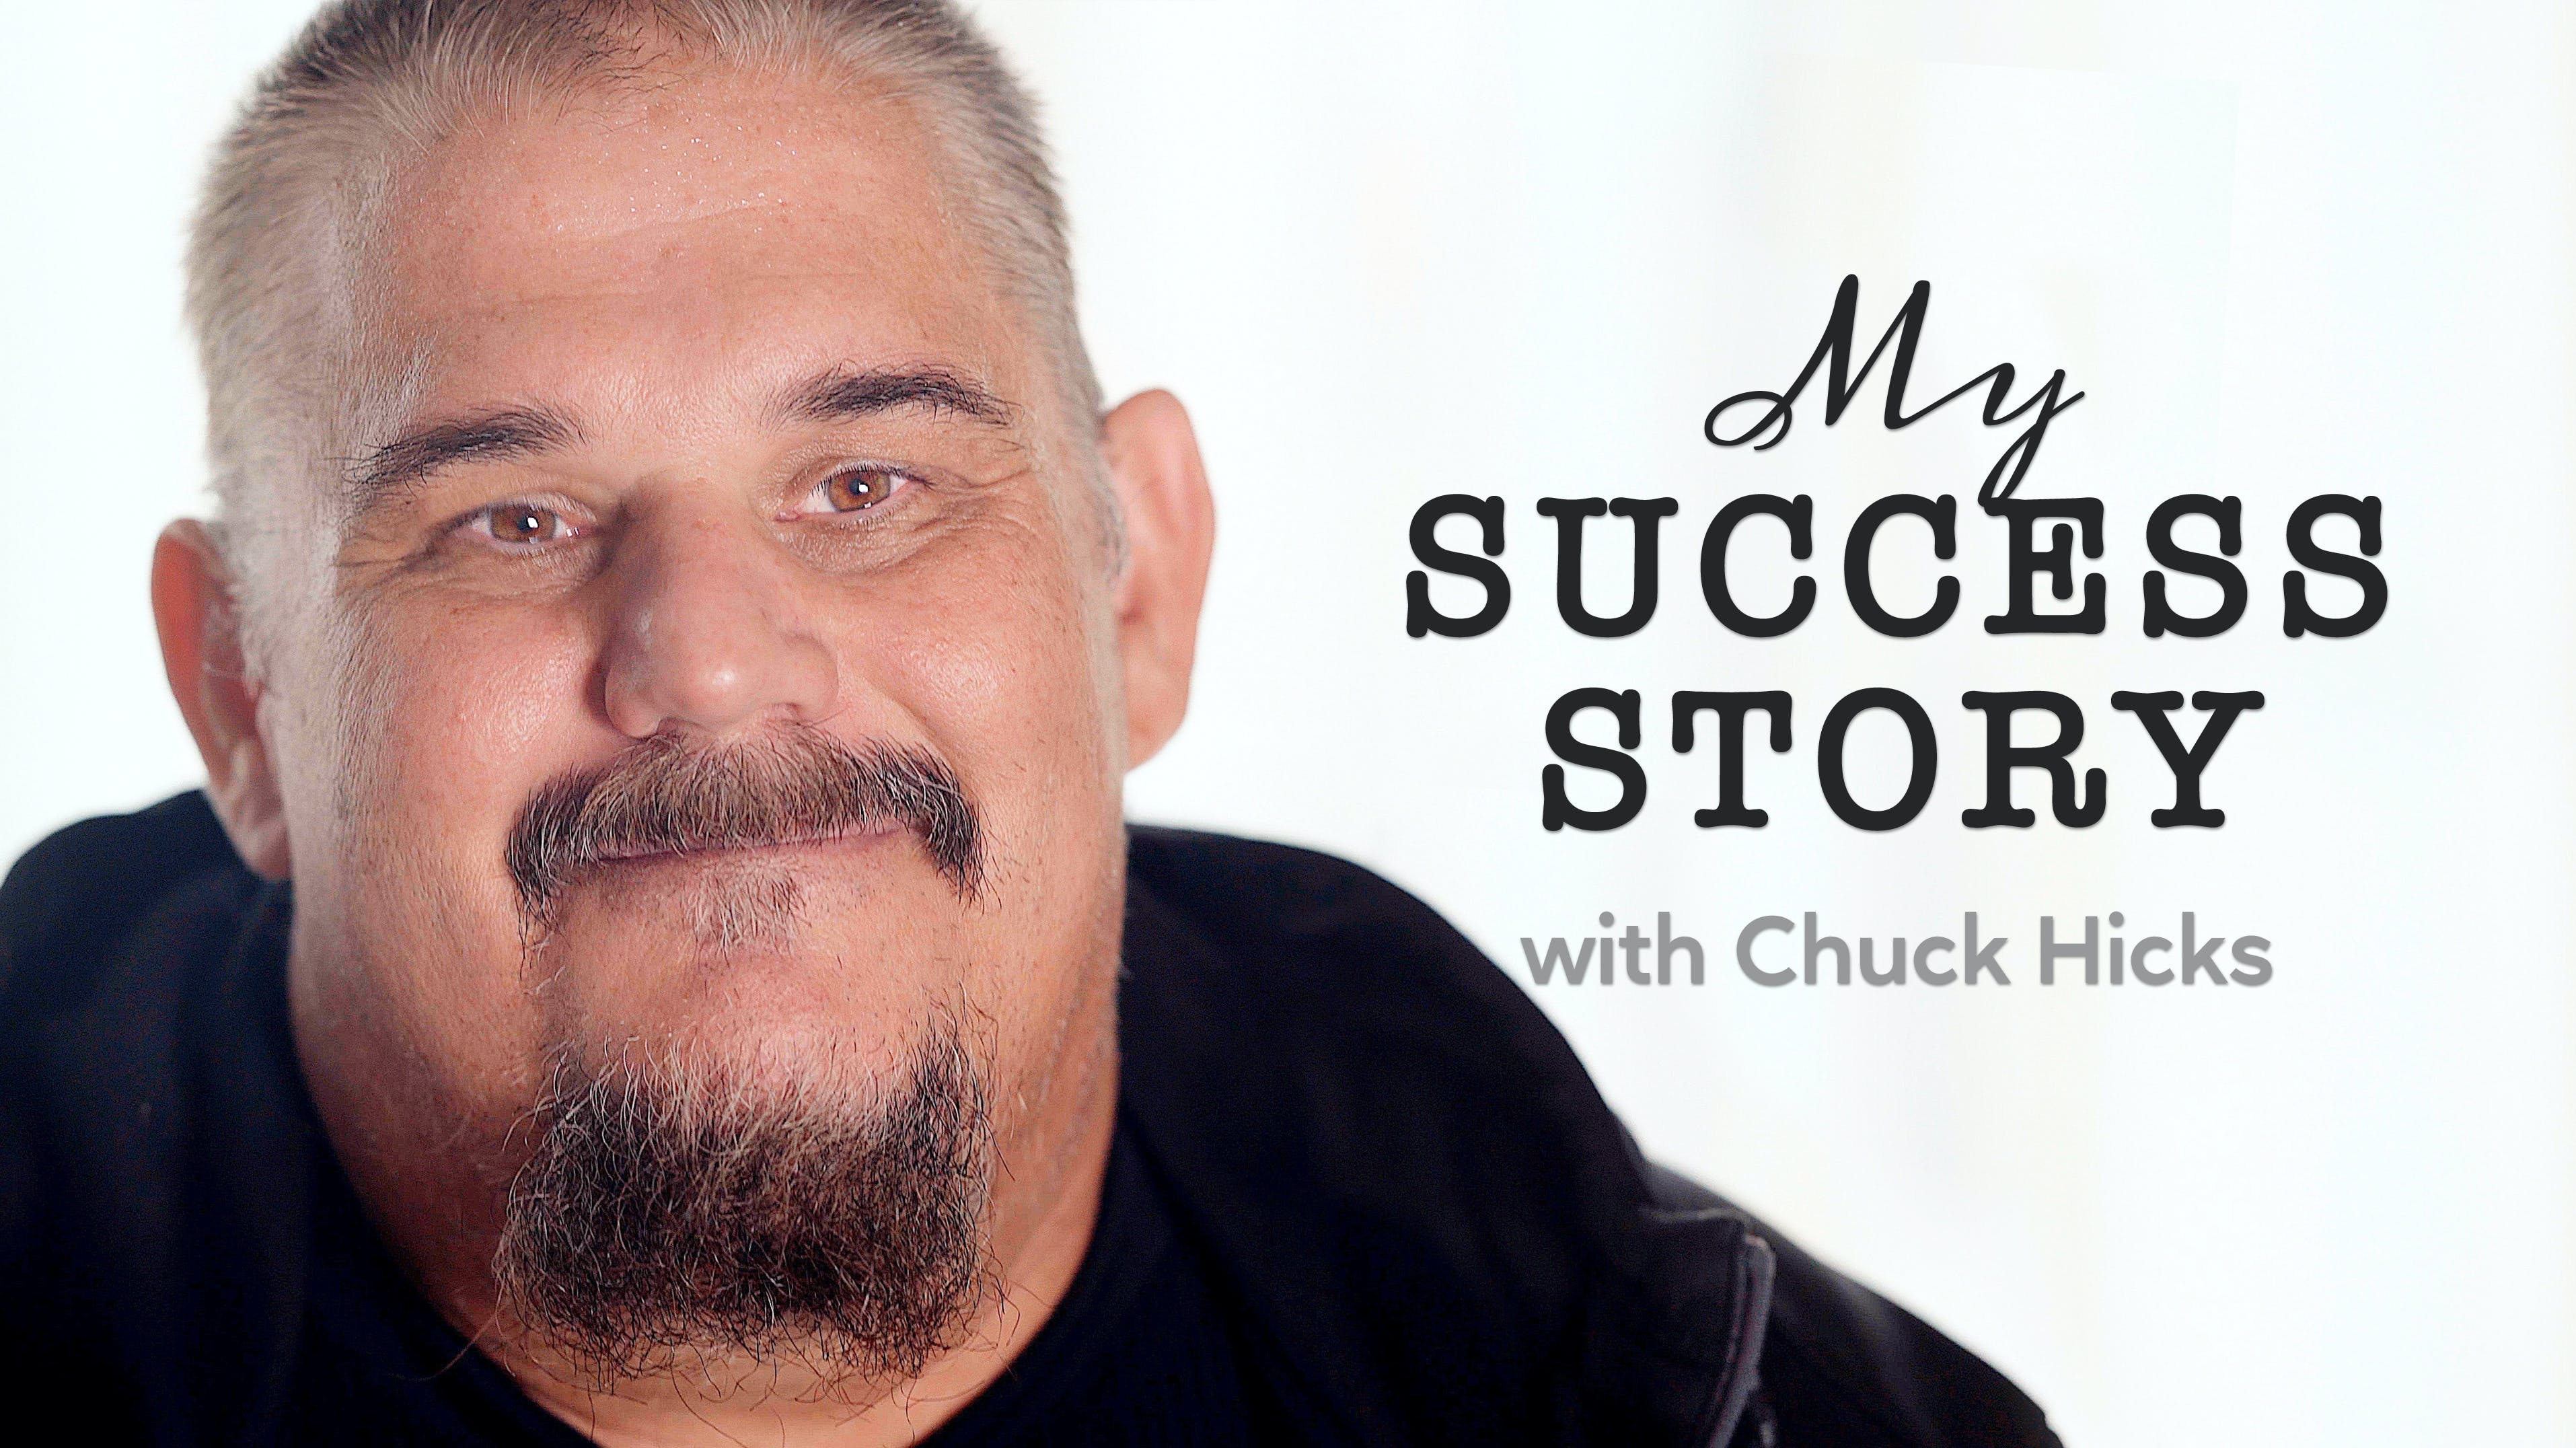 My success story with Chuck Hicks